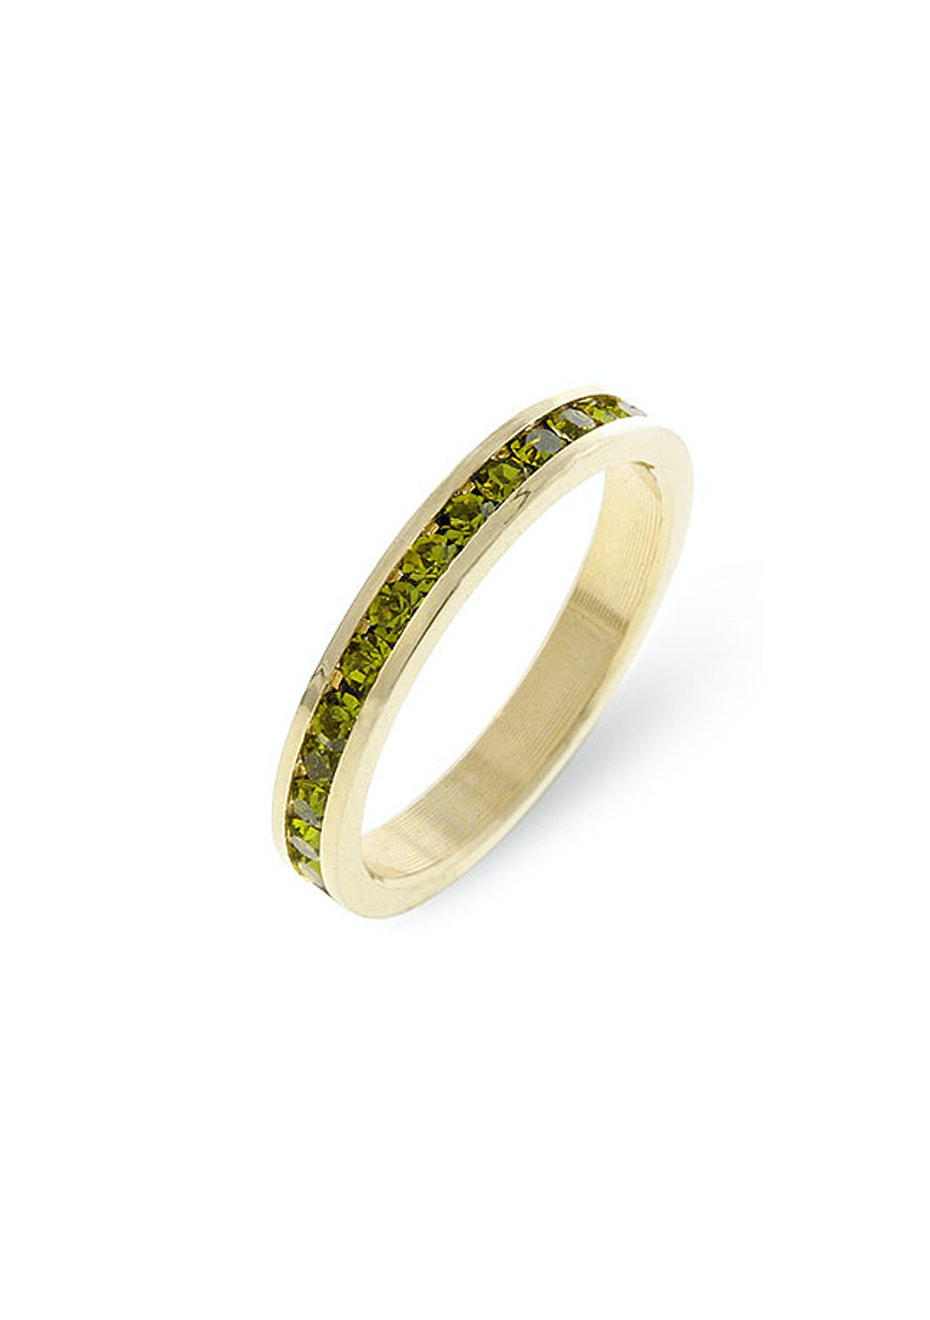 Stackable Ring - 14k Gold w Royal Green Embellished with Crystals from Swarovski